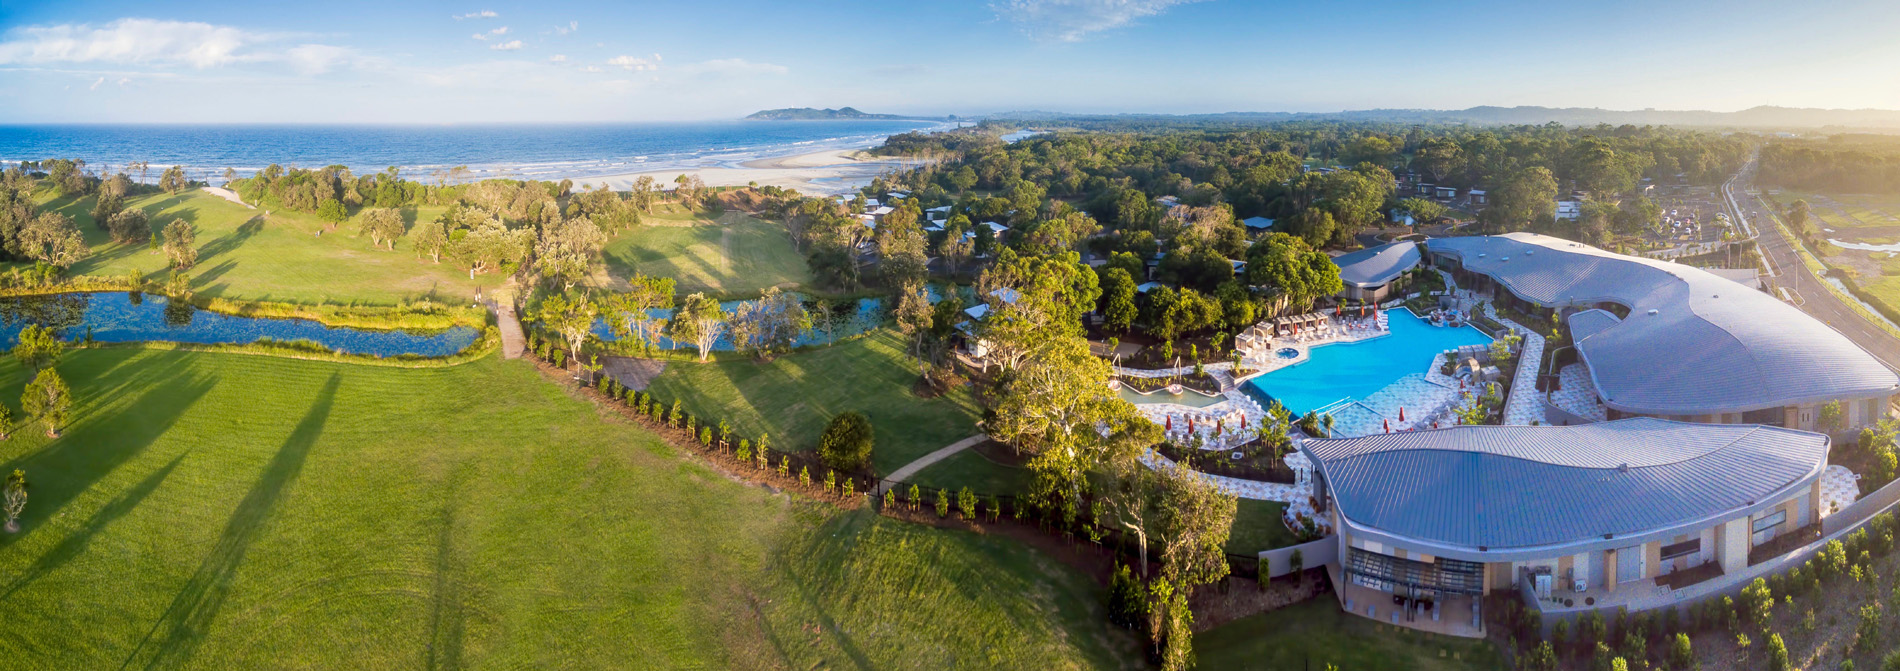 Australia's 7 Most Romantic Hotels | Elements of Byron